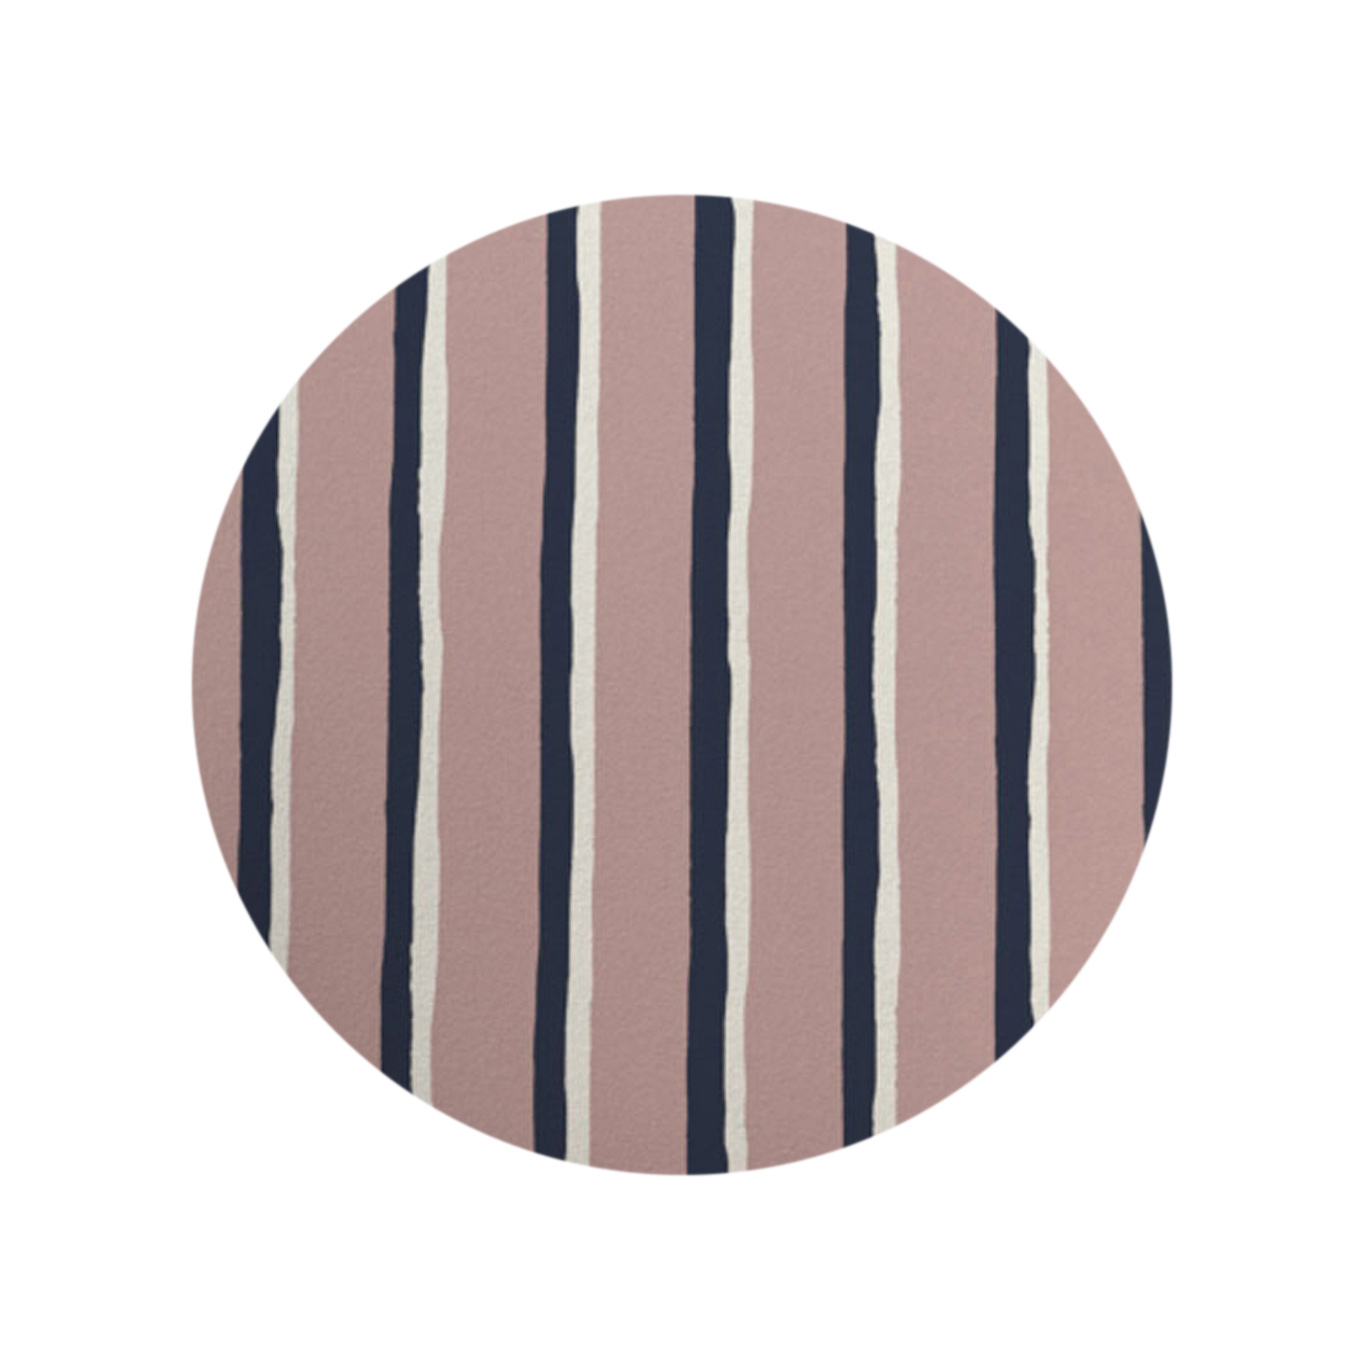 Painted Stripe - Pink Stone